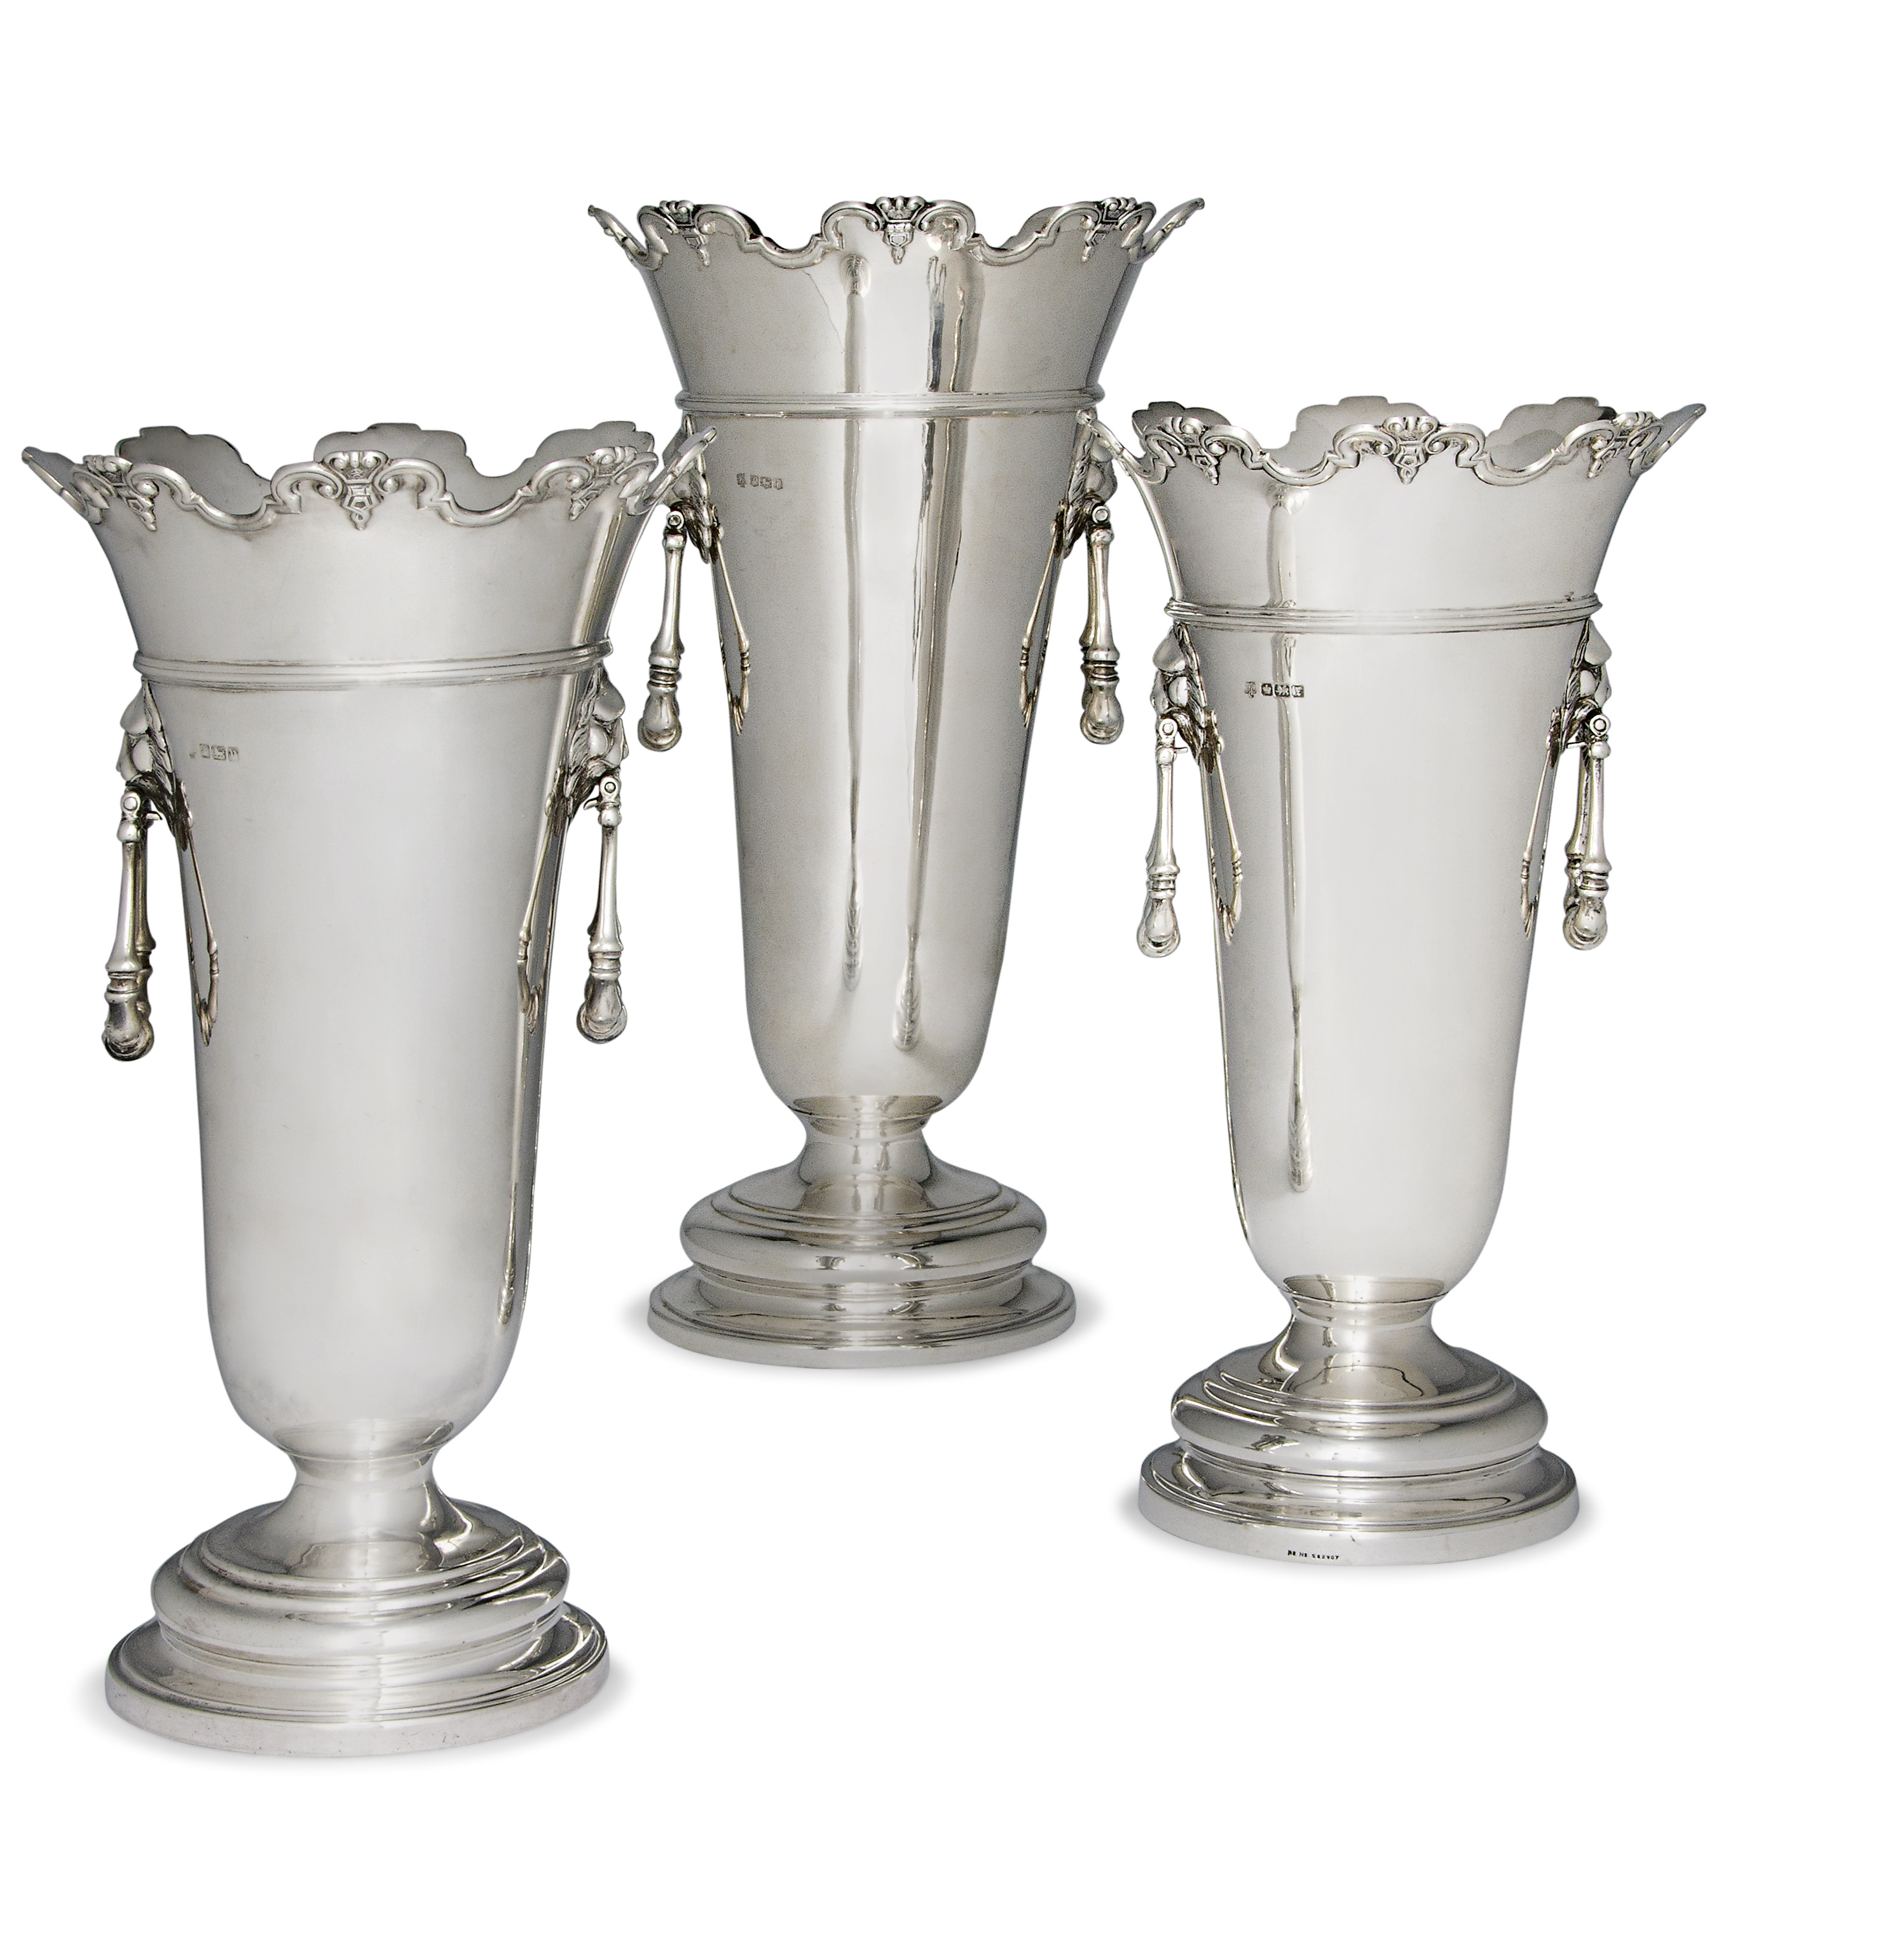 A MATCHED SET OF THREE SILVER VASES